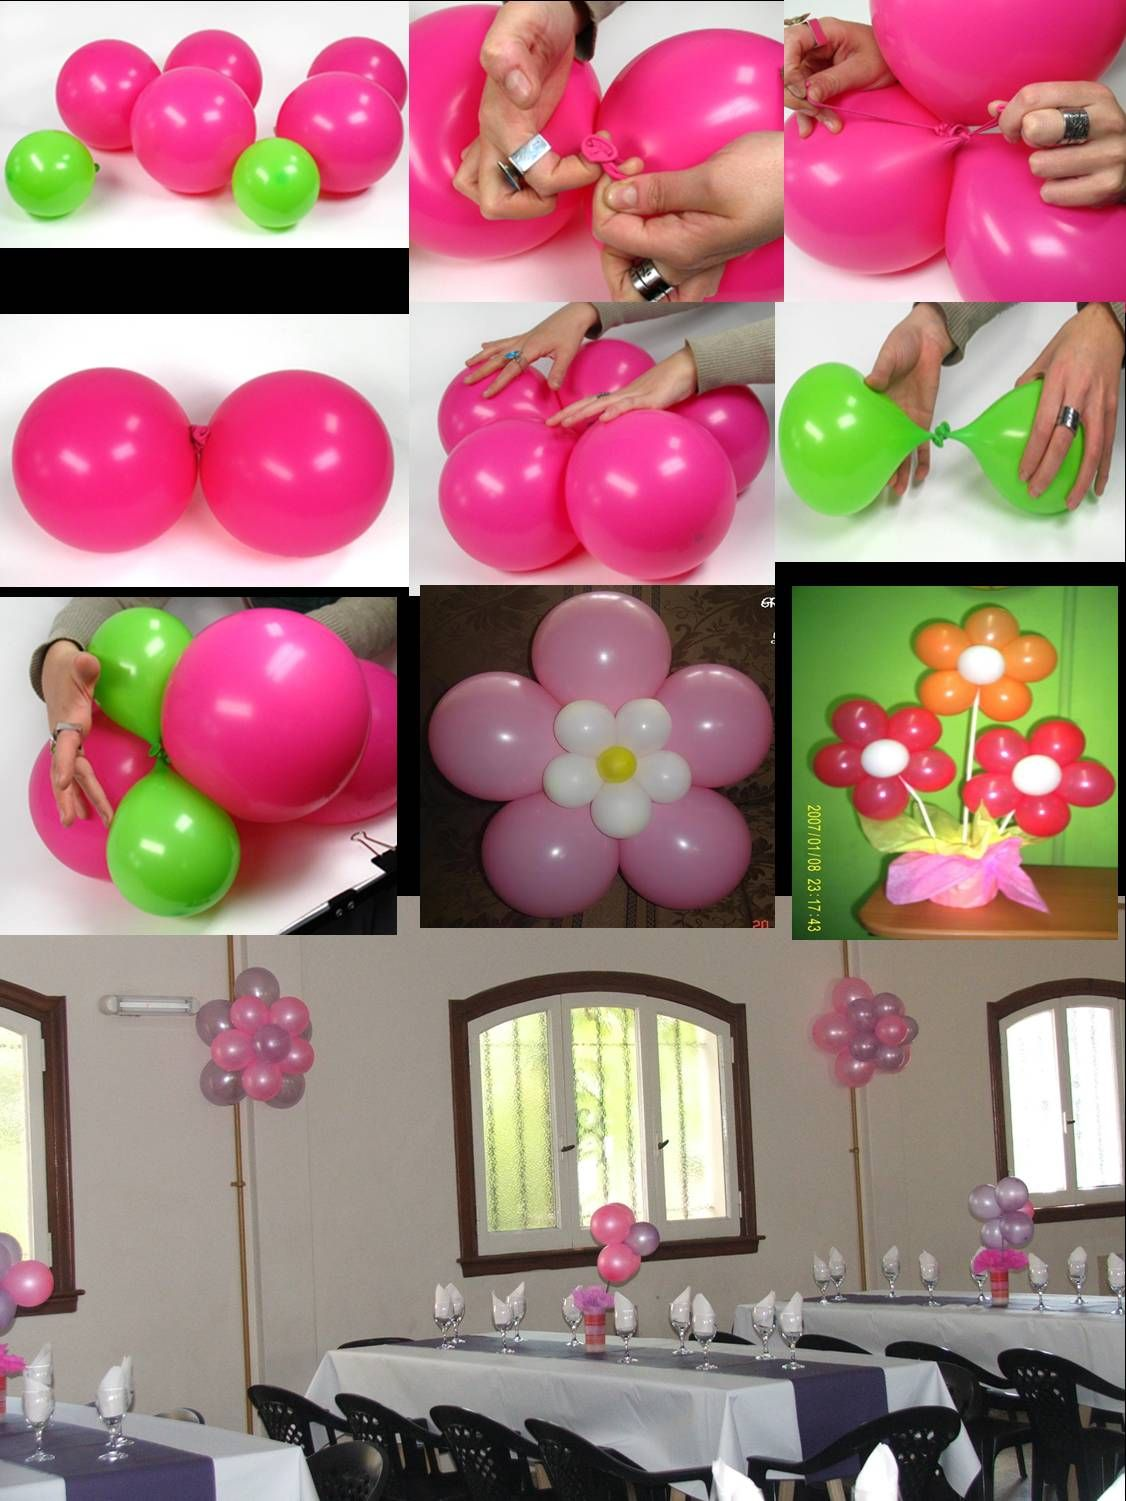 Decorar Un Salon Como Decorar Un Salon De Fiestas Con Flores De Globos